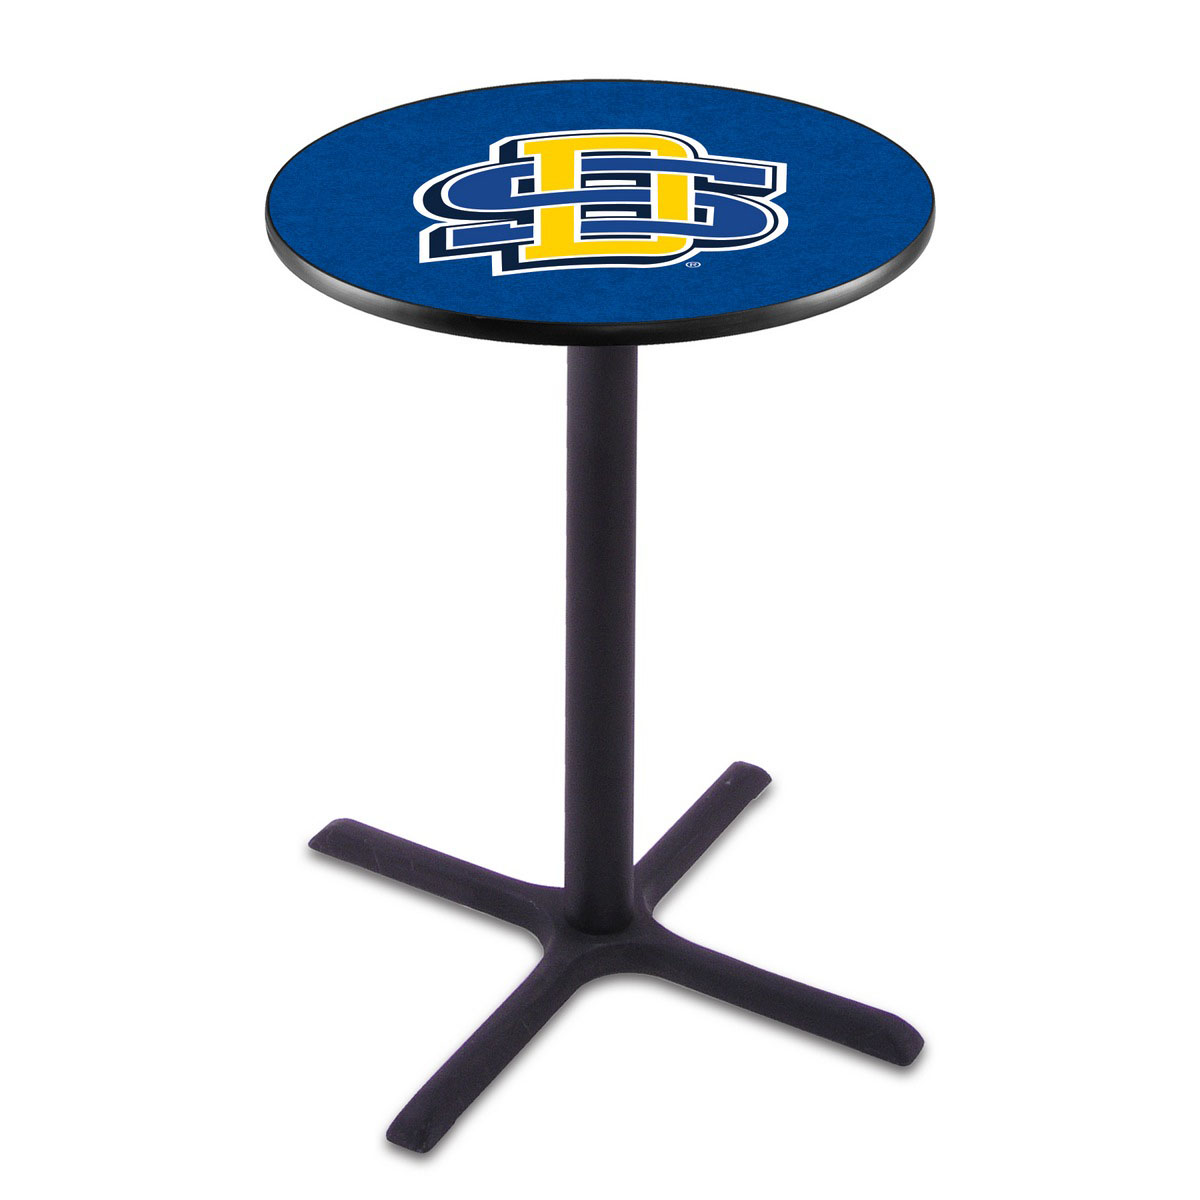 Info about South Dakota State Black Wrinkle Pub Table Product Photo